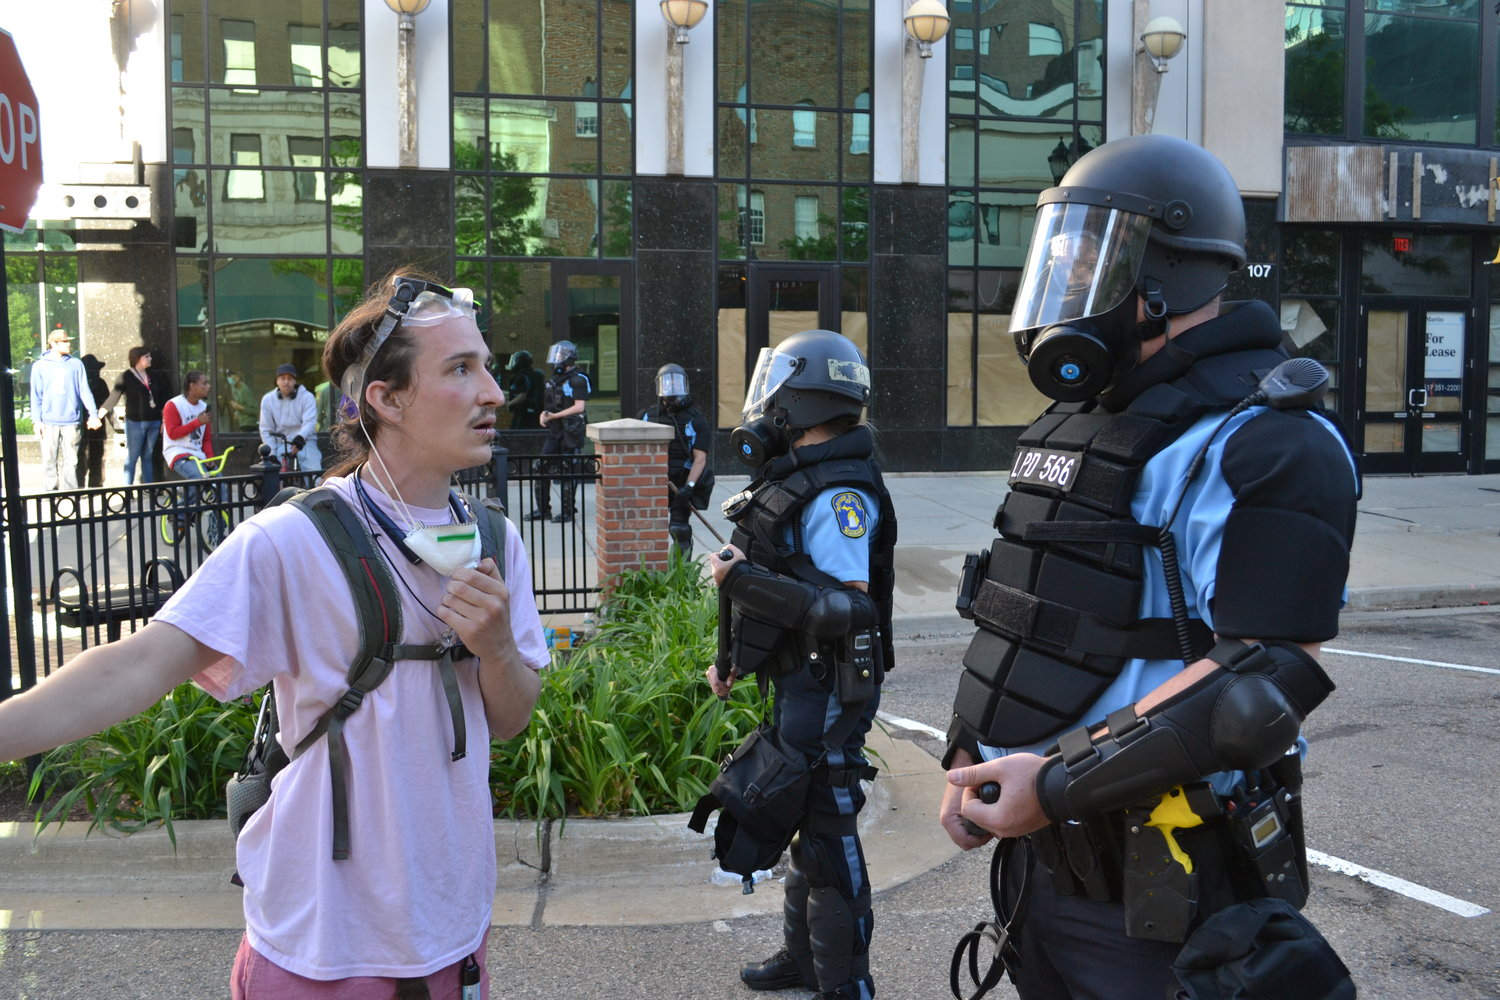 A protester speaks to a police officer in riot gear.